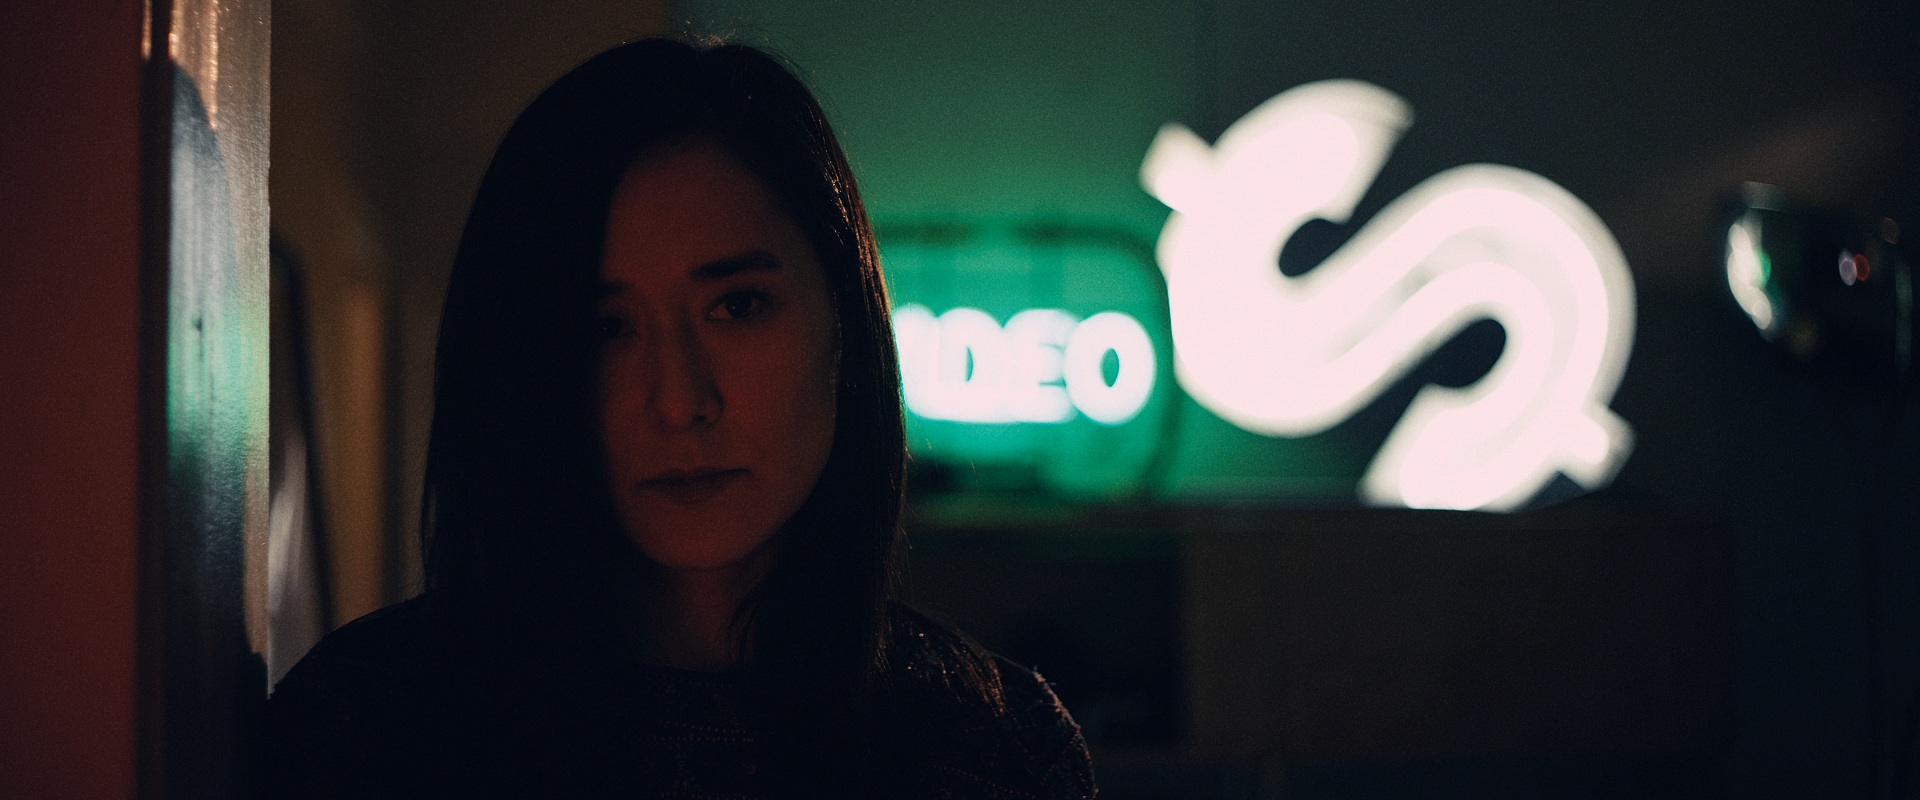 Jennifer Ikeda in Swing; Written by Sung Rno; Cinematographer - Ramsey Fendall; Director - Andrew Pang